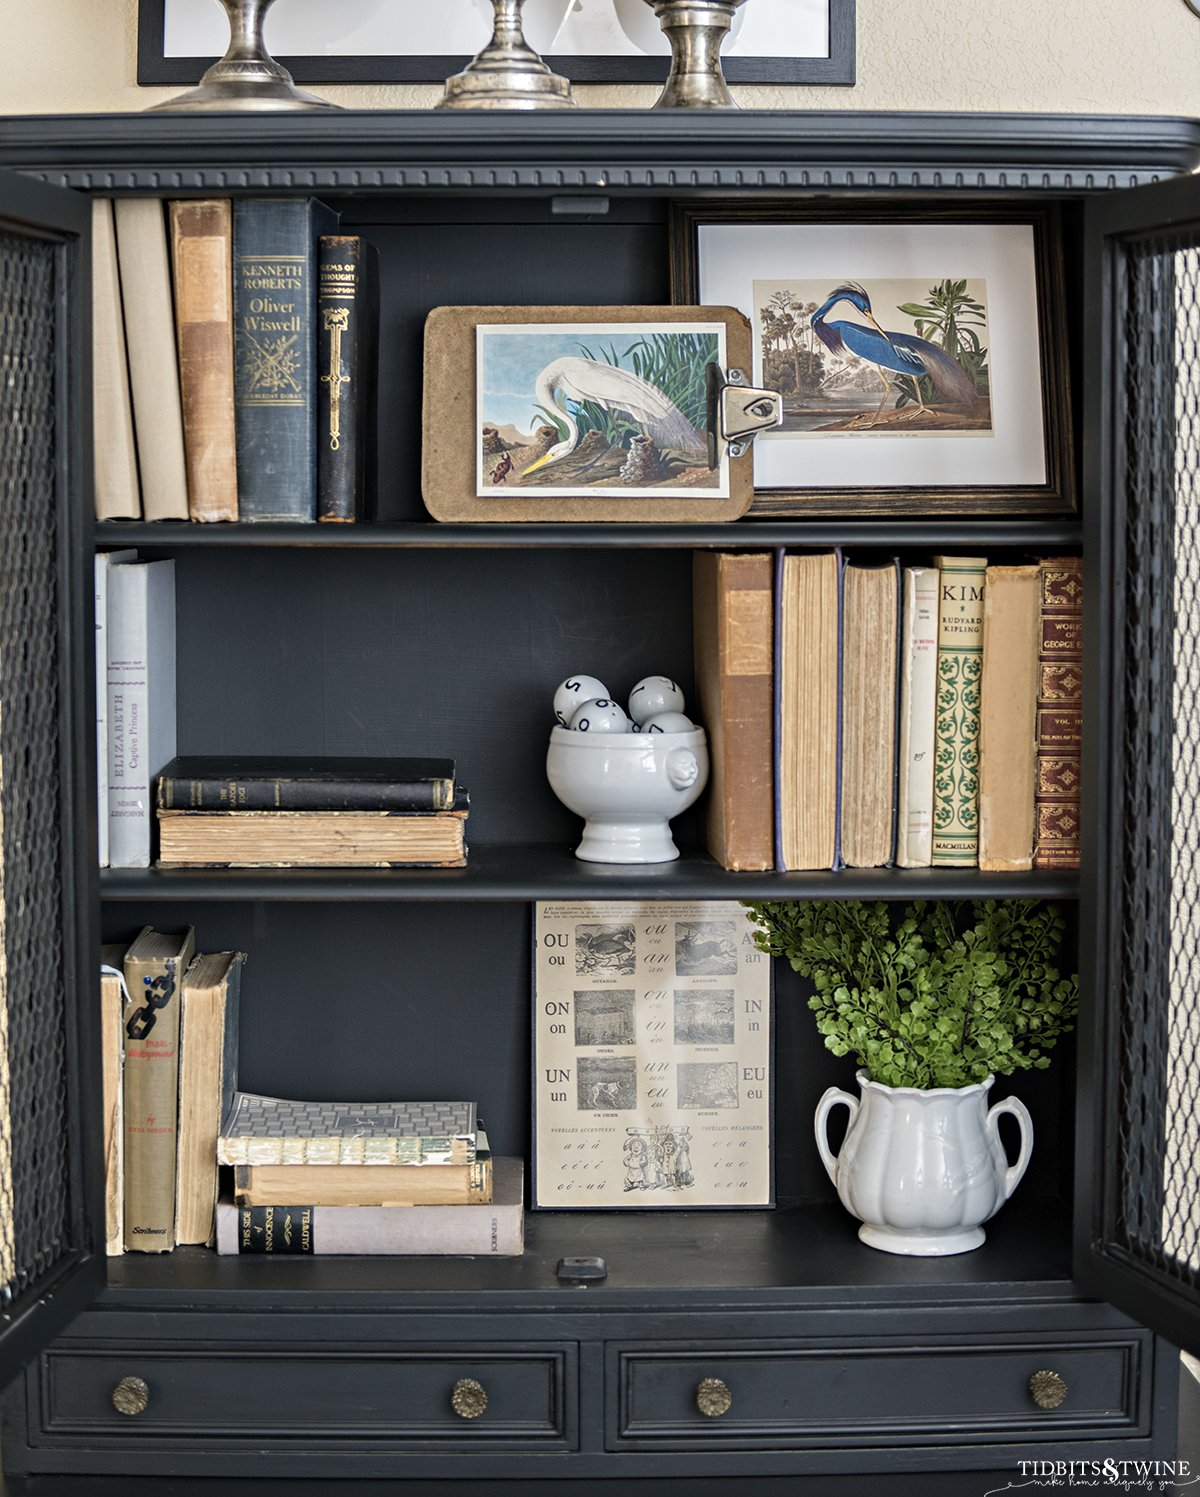 Black cabinet with styled shelves holding ntique books and framed bird artwork